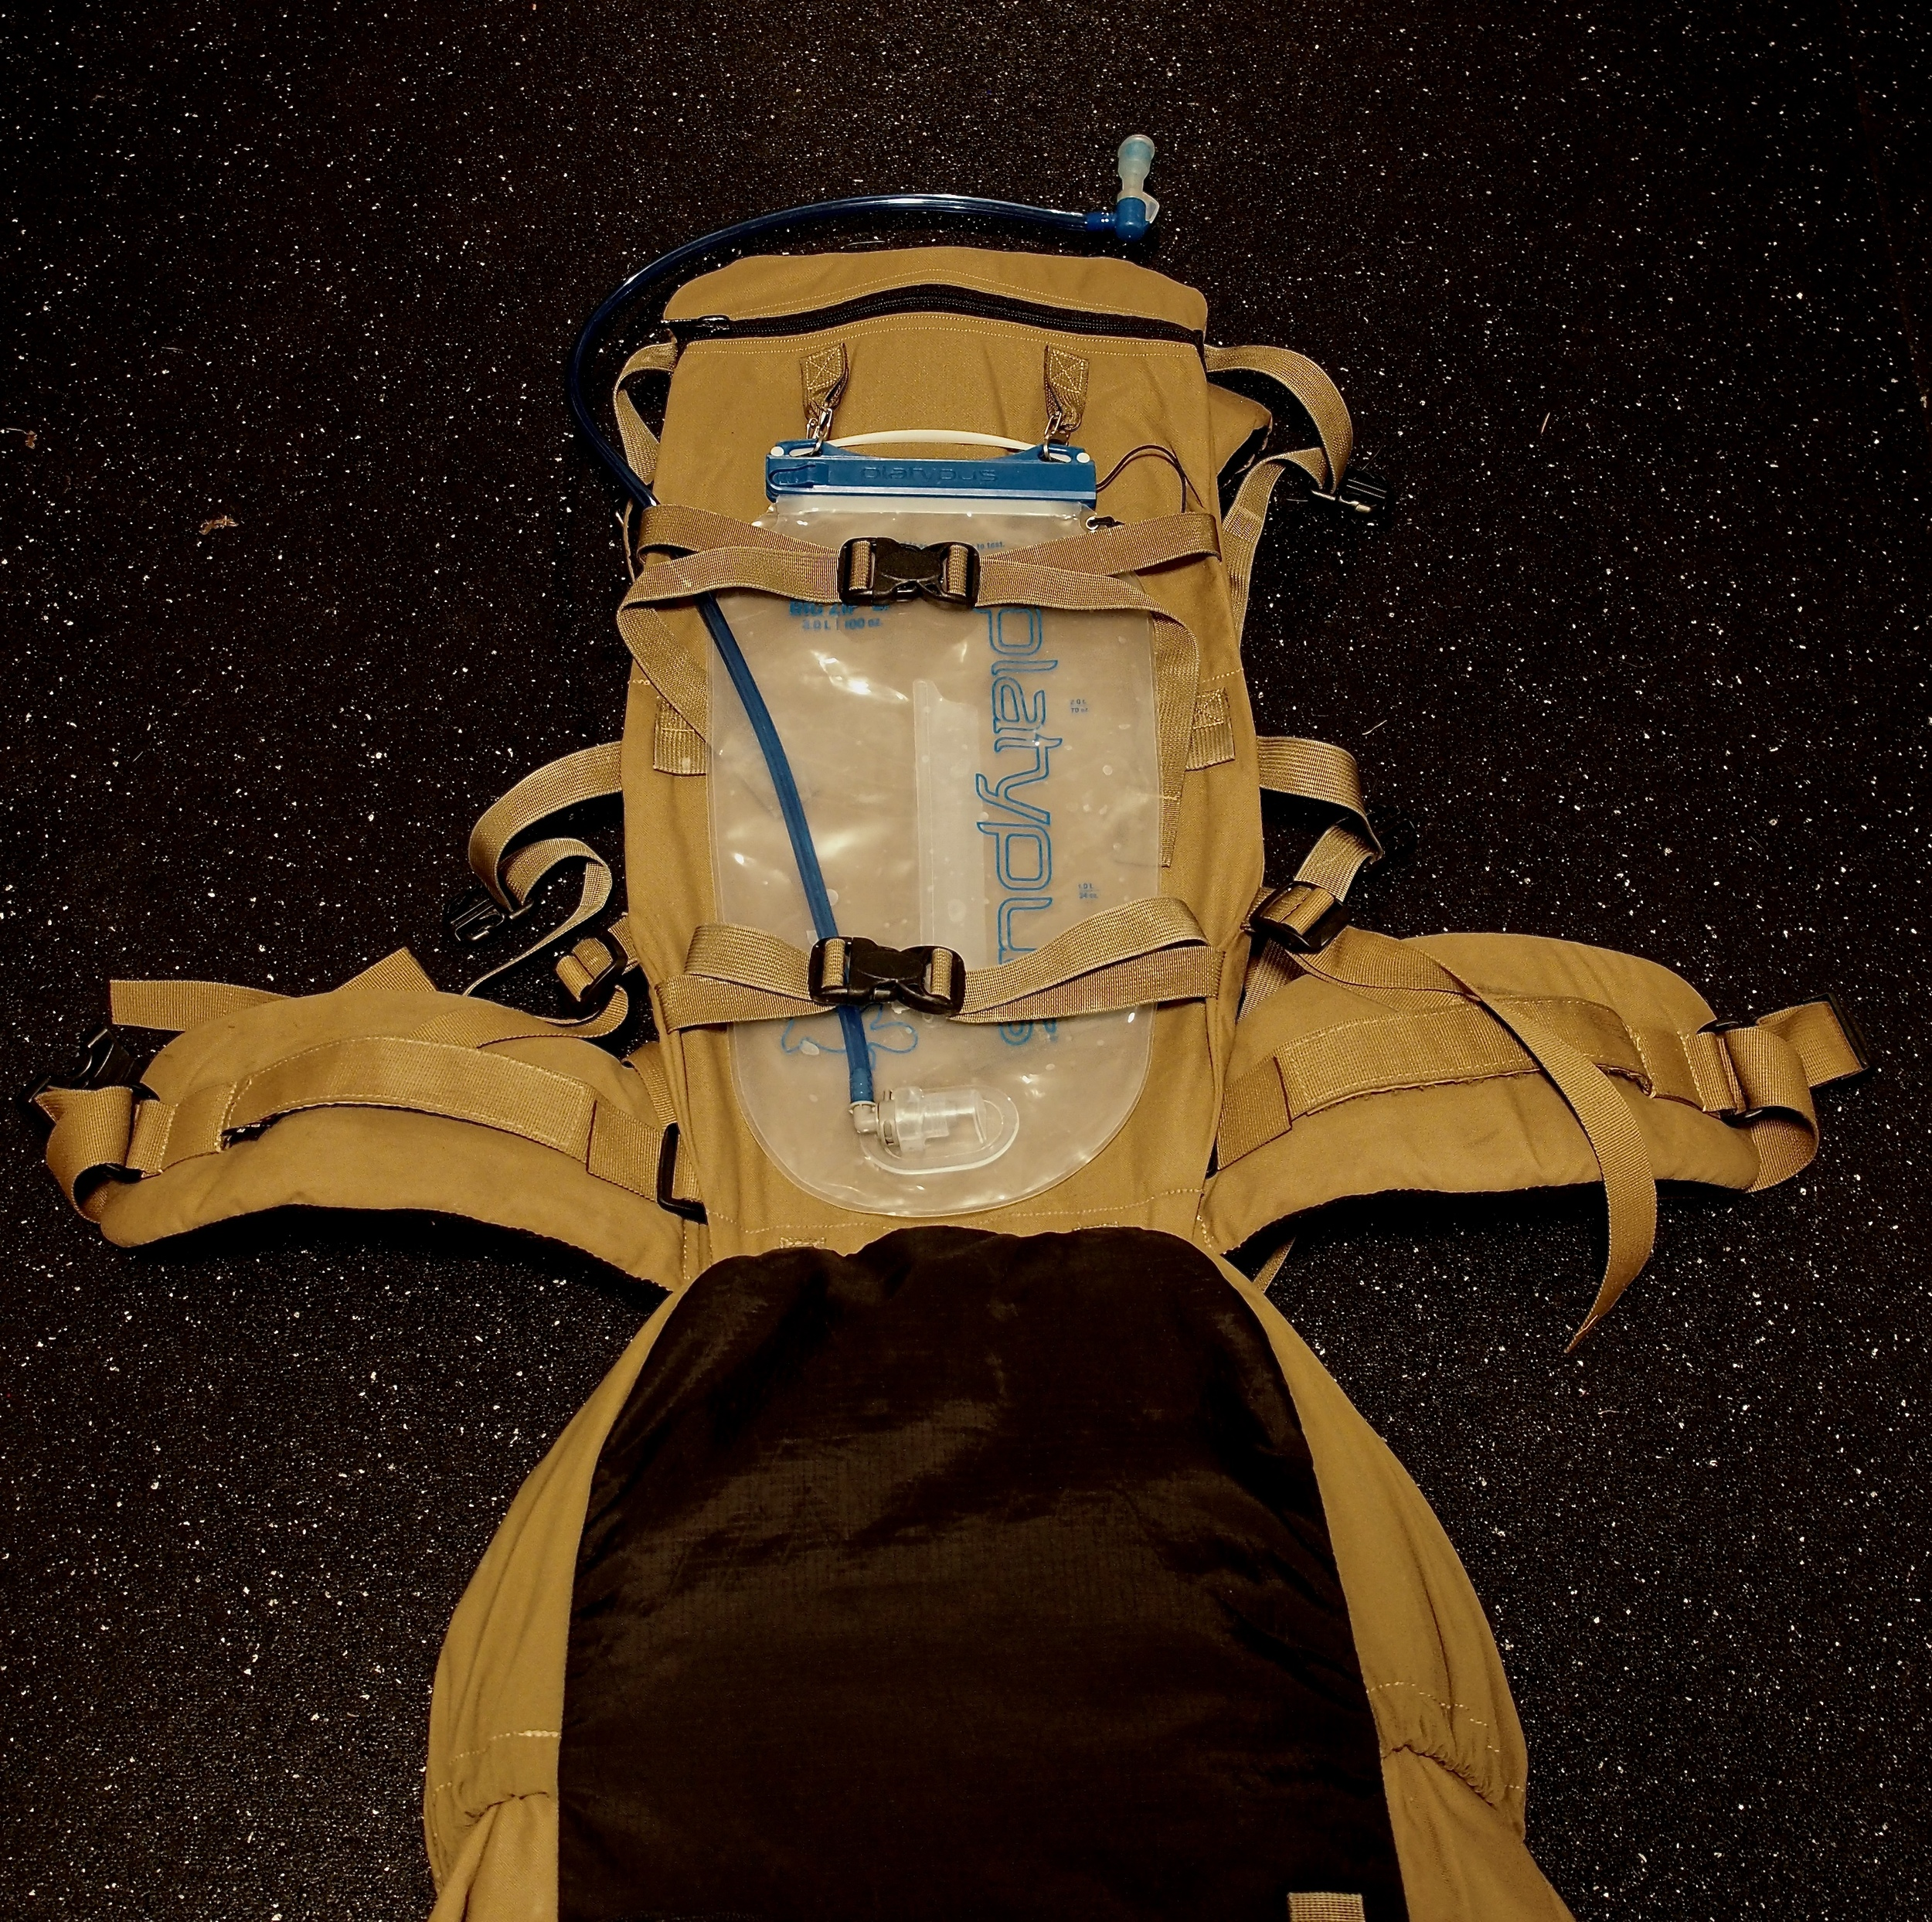 Here's a picture of my bladder system. I've bounced between canteens, bottles, and bladders, but until I found this Platypus bladder, it was all a pain in the neck. This bladder has structure, has a zip-top closer making it easy to clean, and is durable. My Exo Mountain Gear pack allows me to sandwich the bladder between the bag and the frame so I don't take up valuable real estate inside the pack. This also keeps the water weight as close to my back as possible.